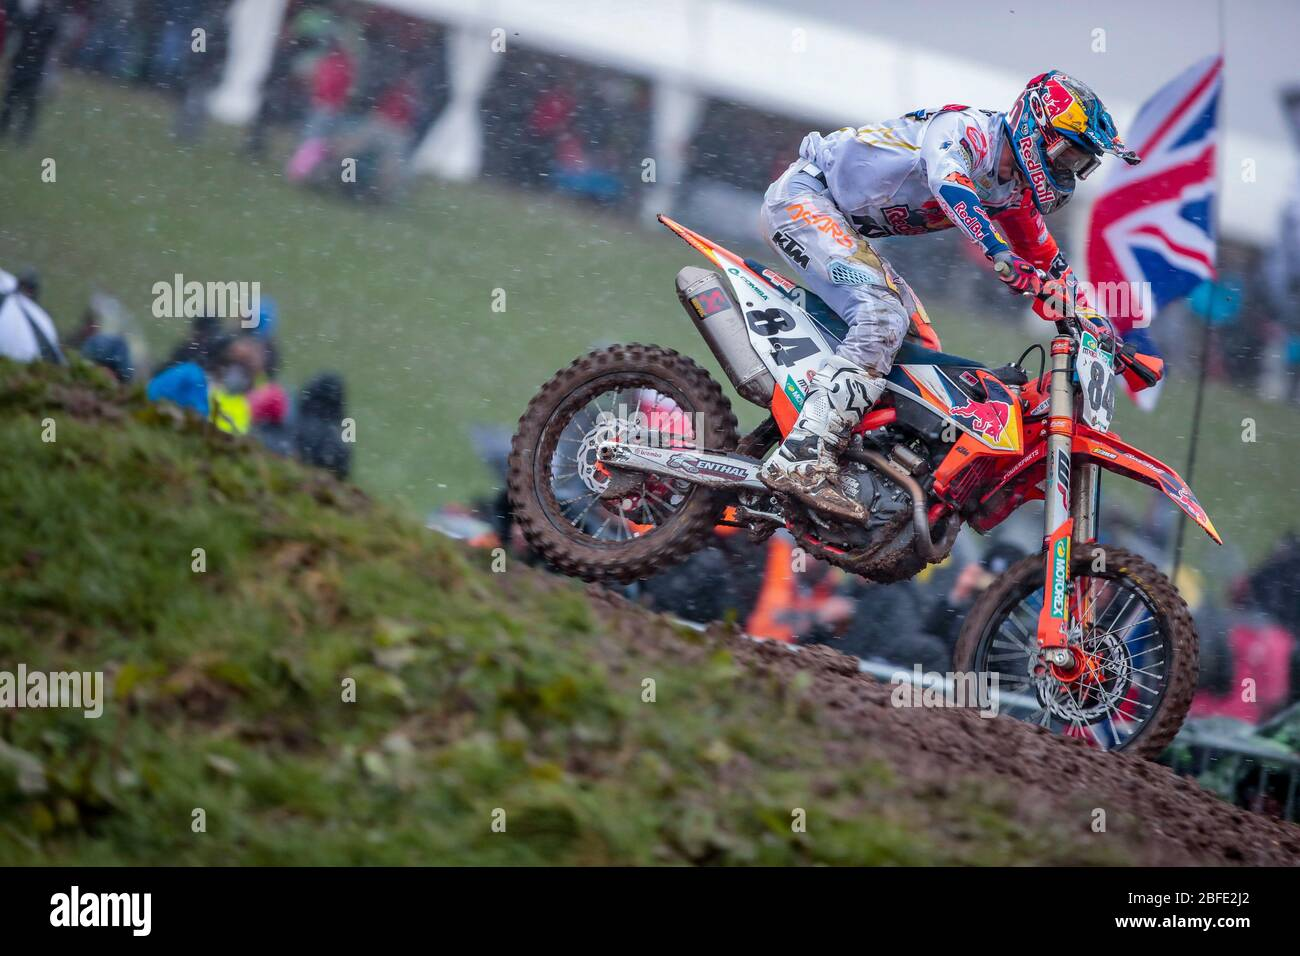 Winchester, Italy. 01st Mar, 2020. jaffrey herlings (hol) ktm factory racing during MXGP of Great Britain, Motocross in winchester, Italy, March 01 2020 Credit: Independent Photo Agency/Alamy Live News Stock Photo